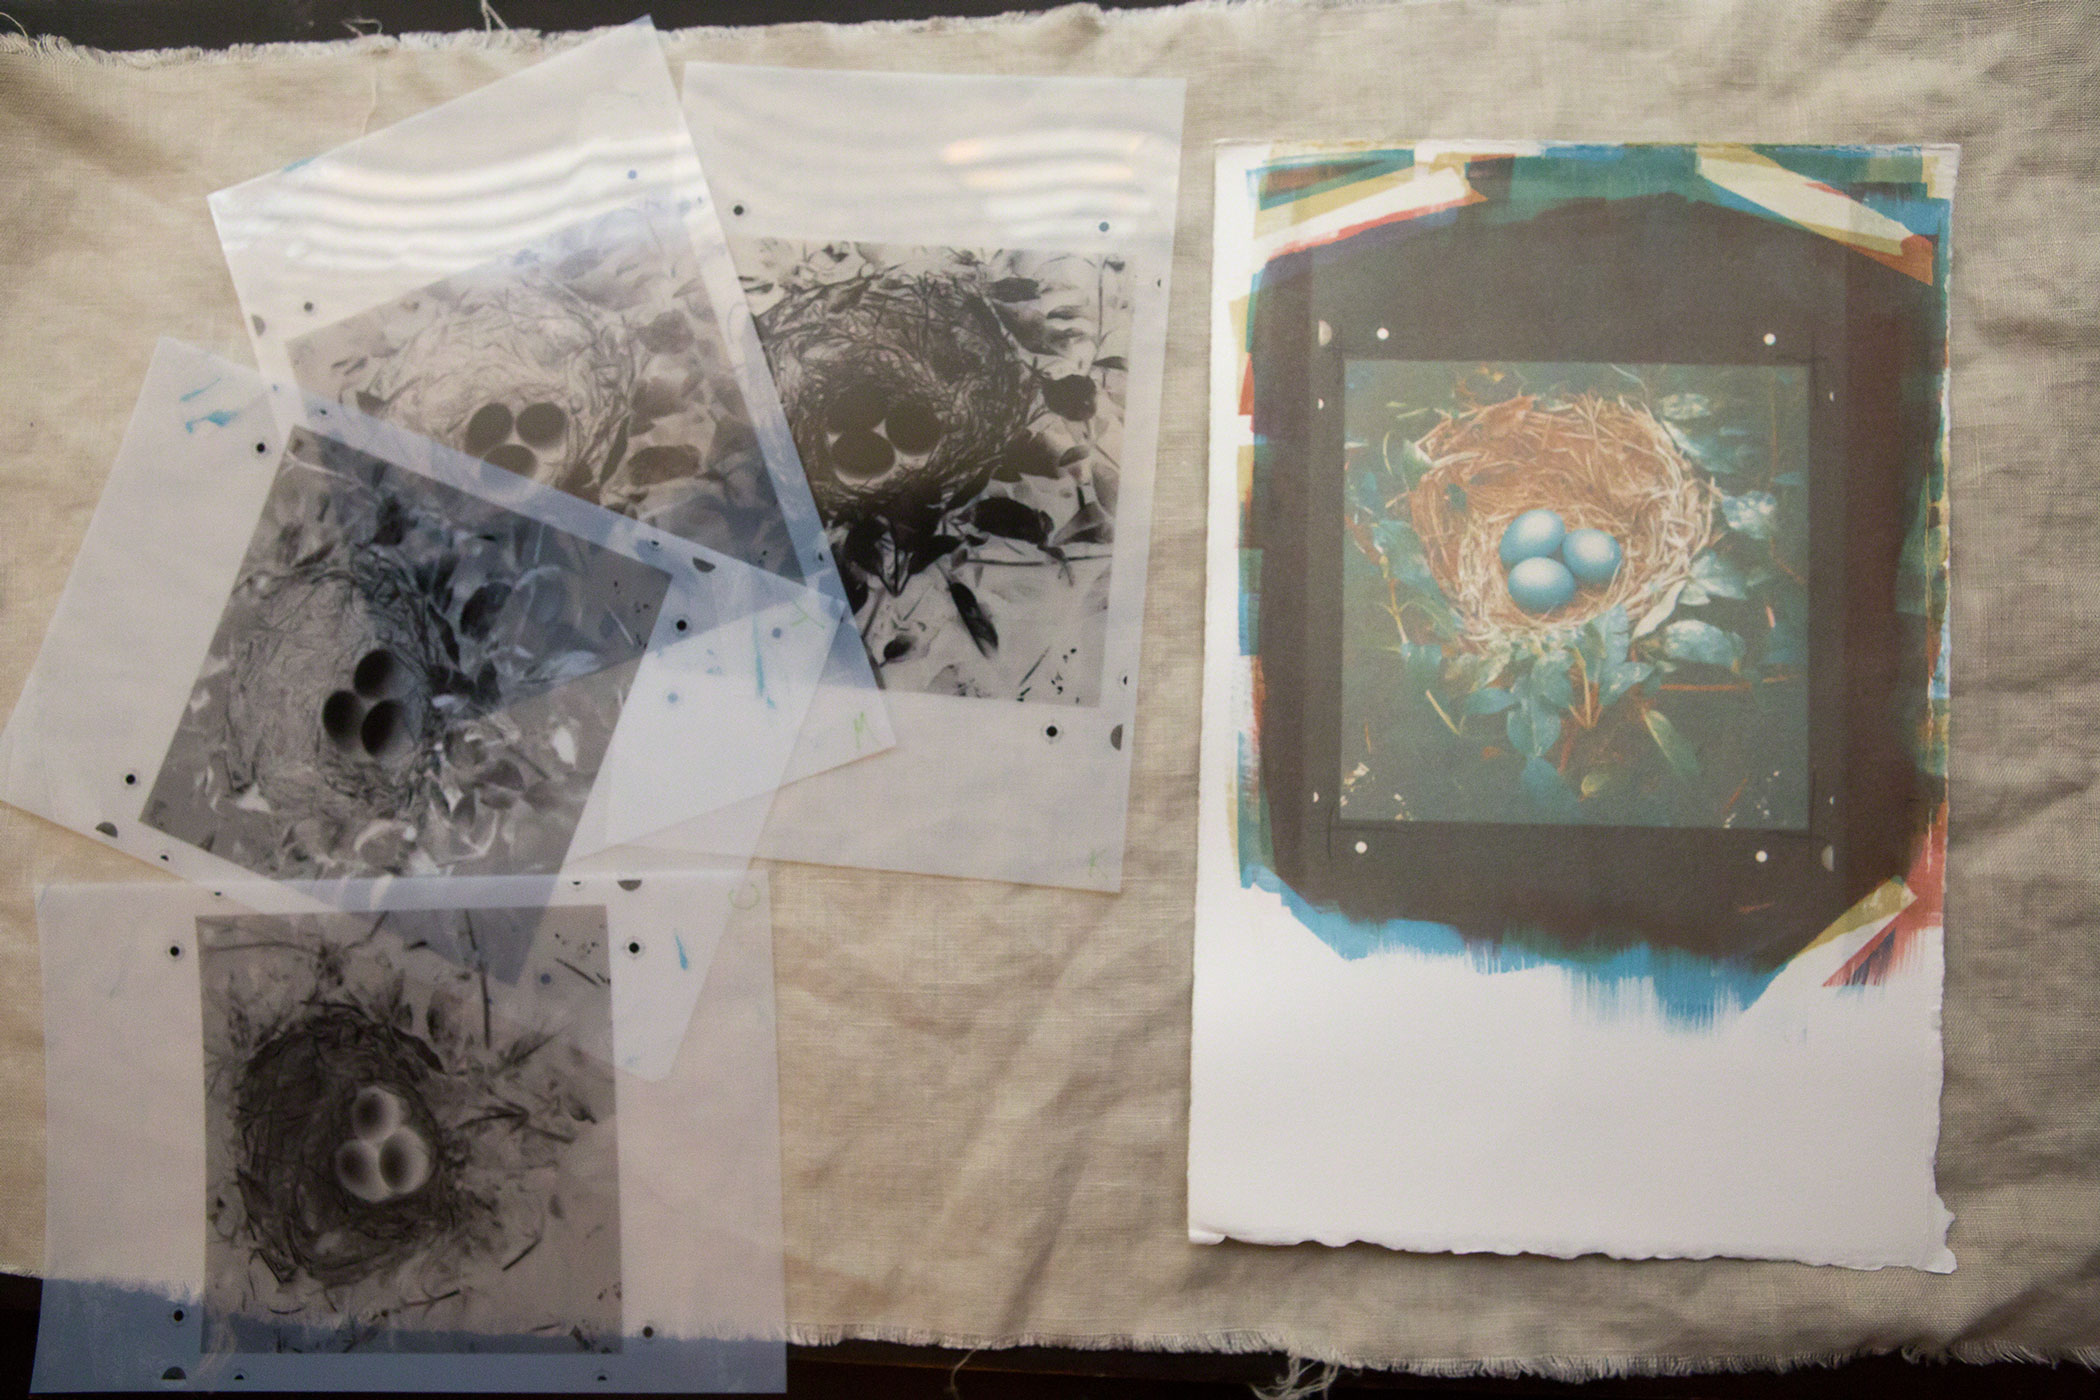 A finished print with the negatives used to create that print